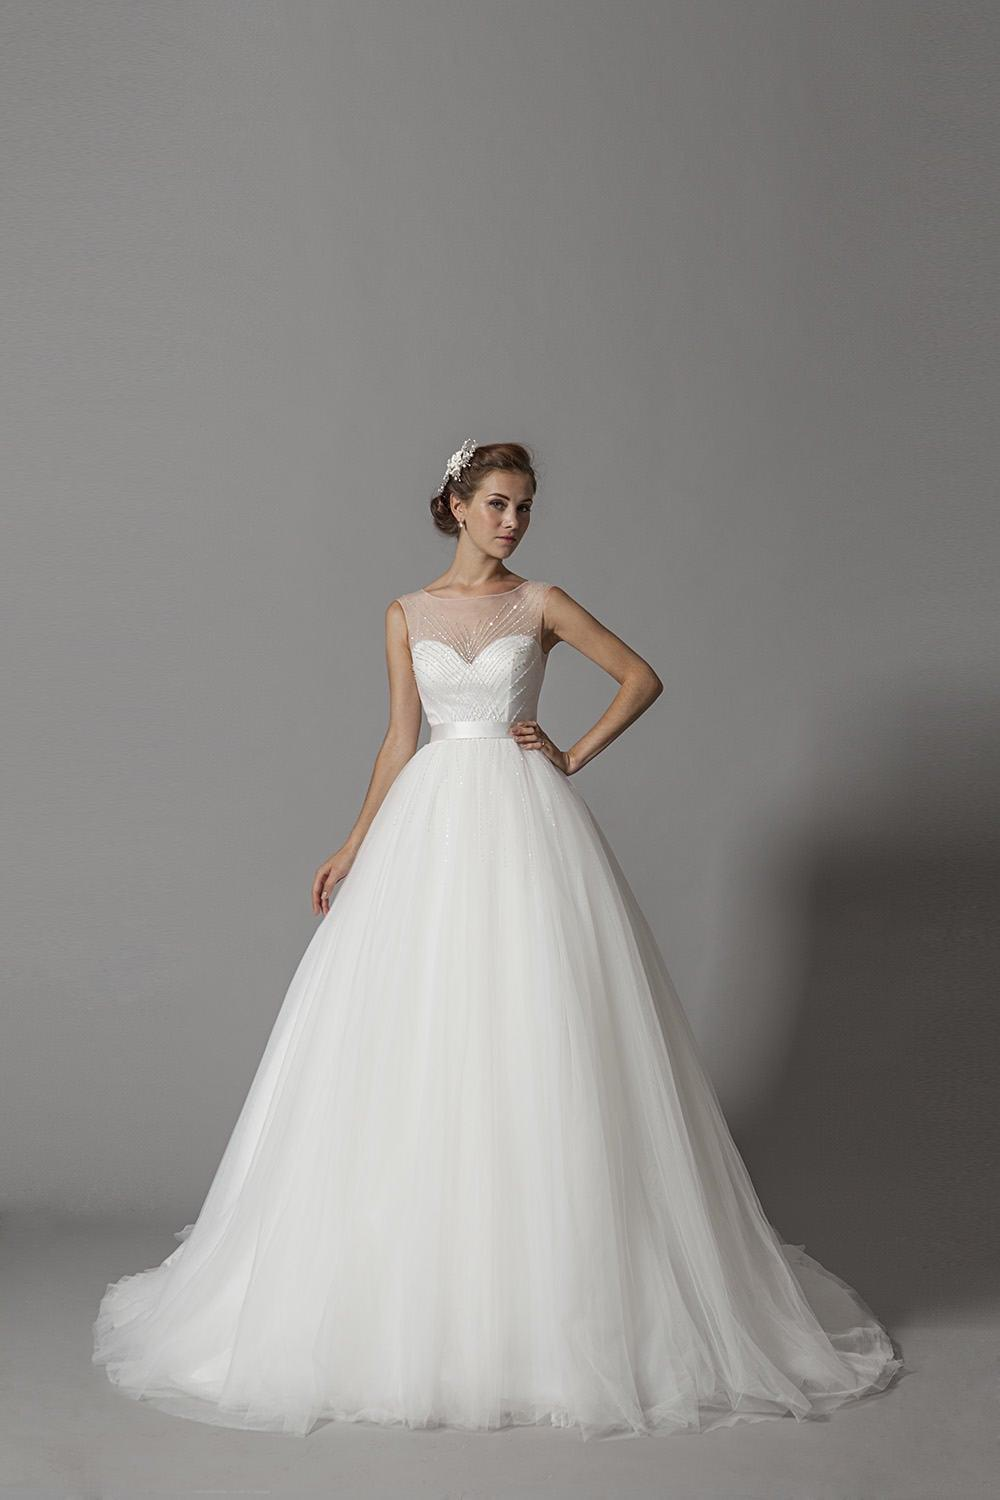 Wedding Dresses With Large Ball Gown Skirts